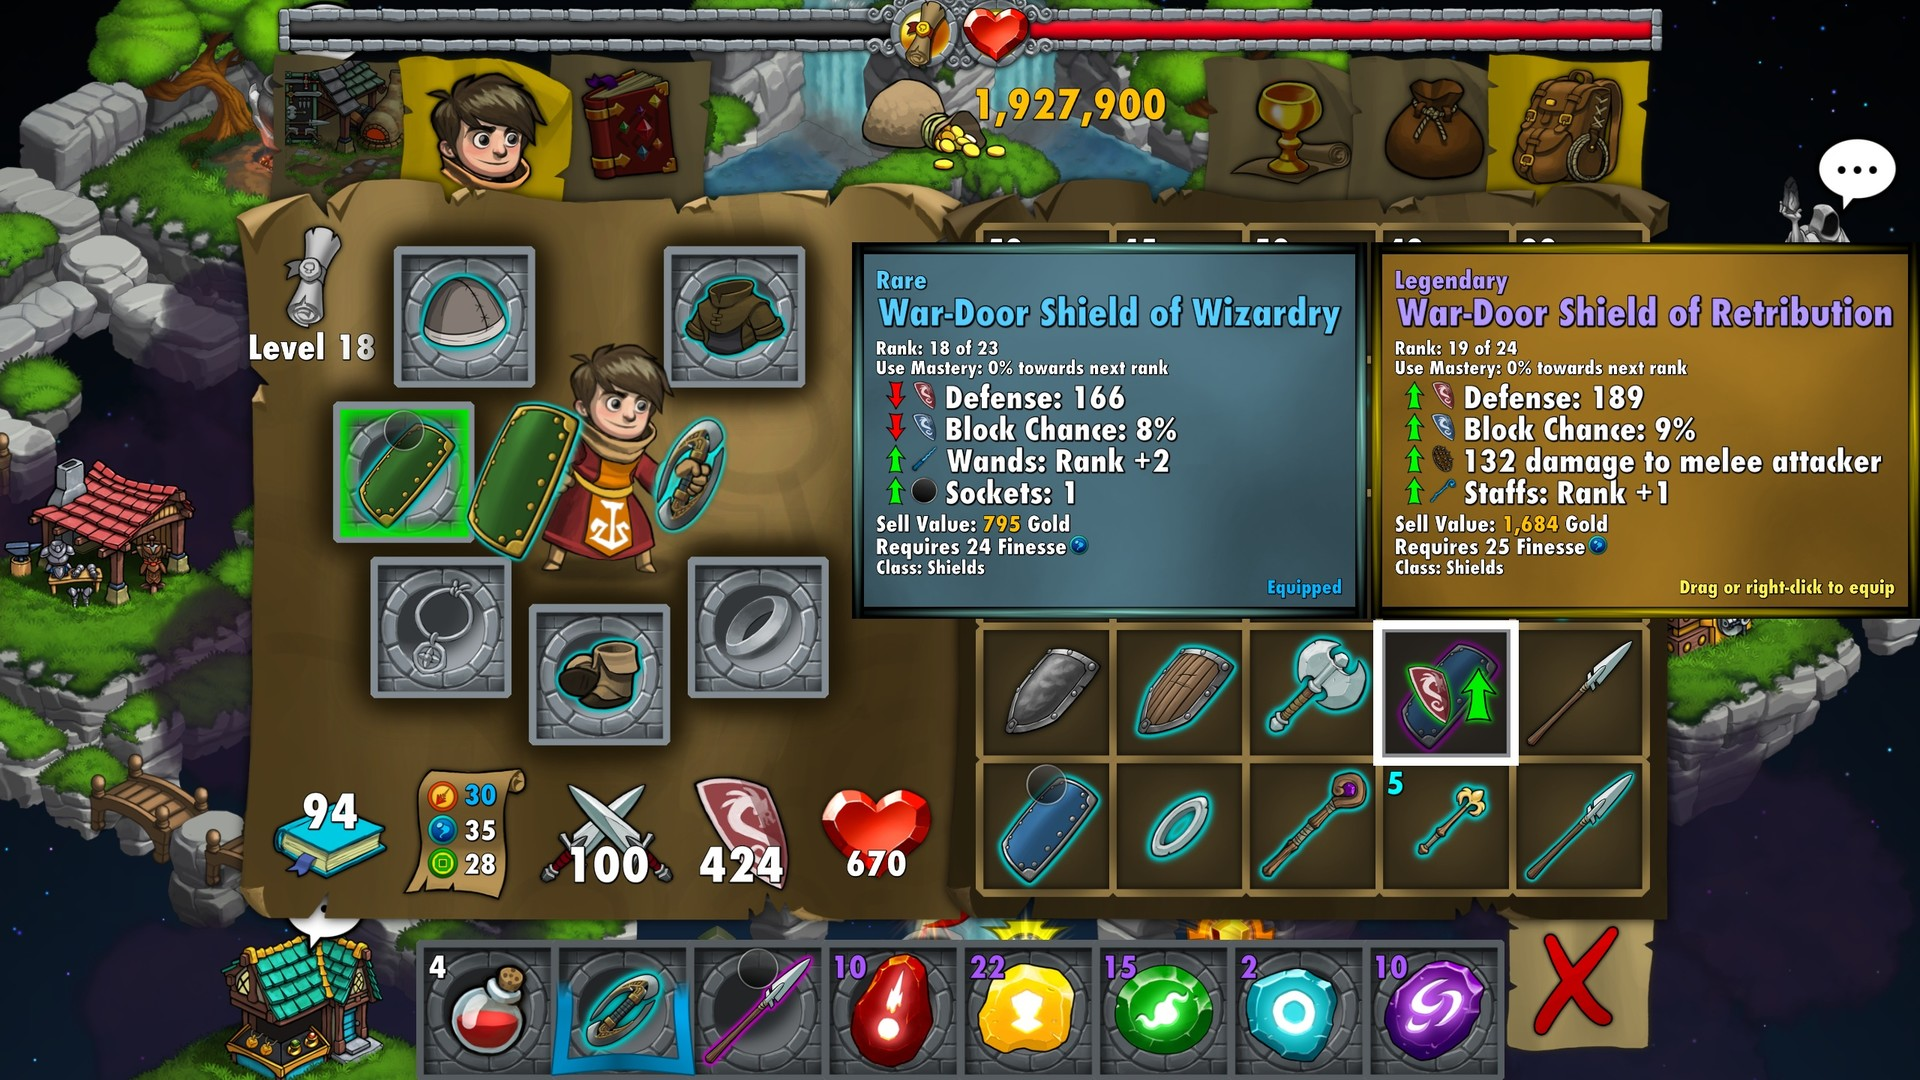 Download rogue wizards for pc amp mac for free